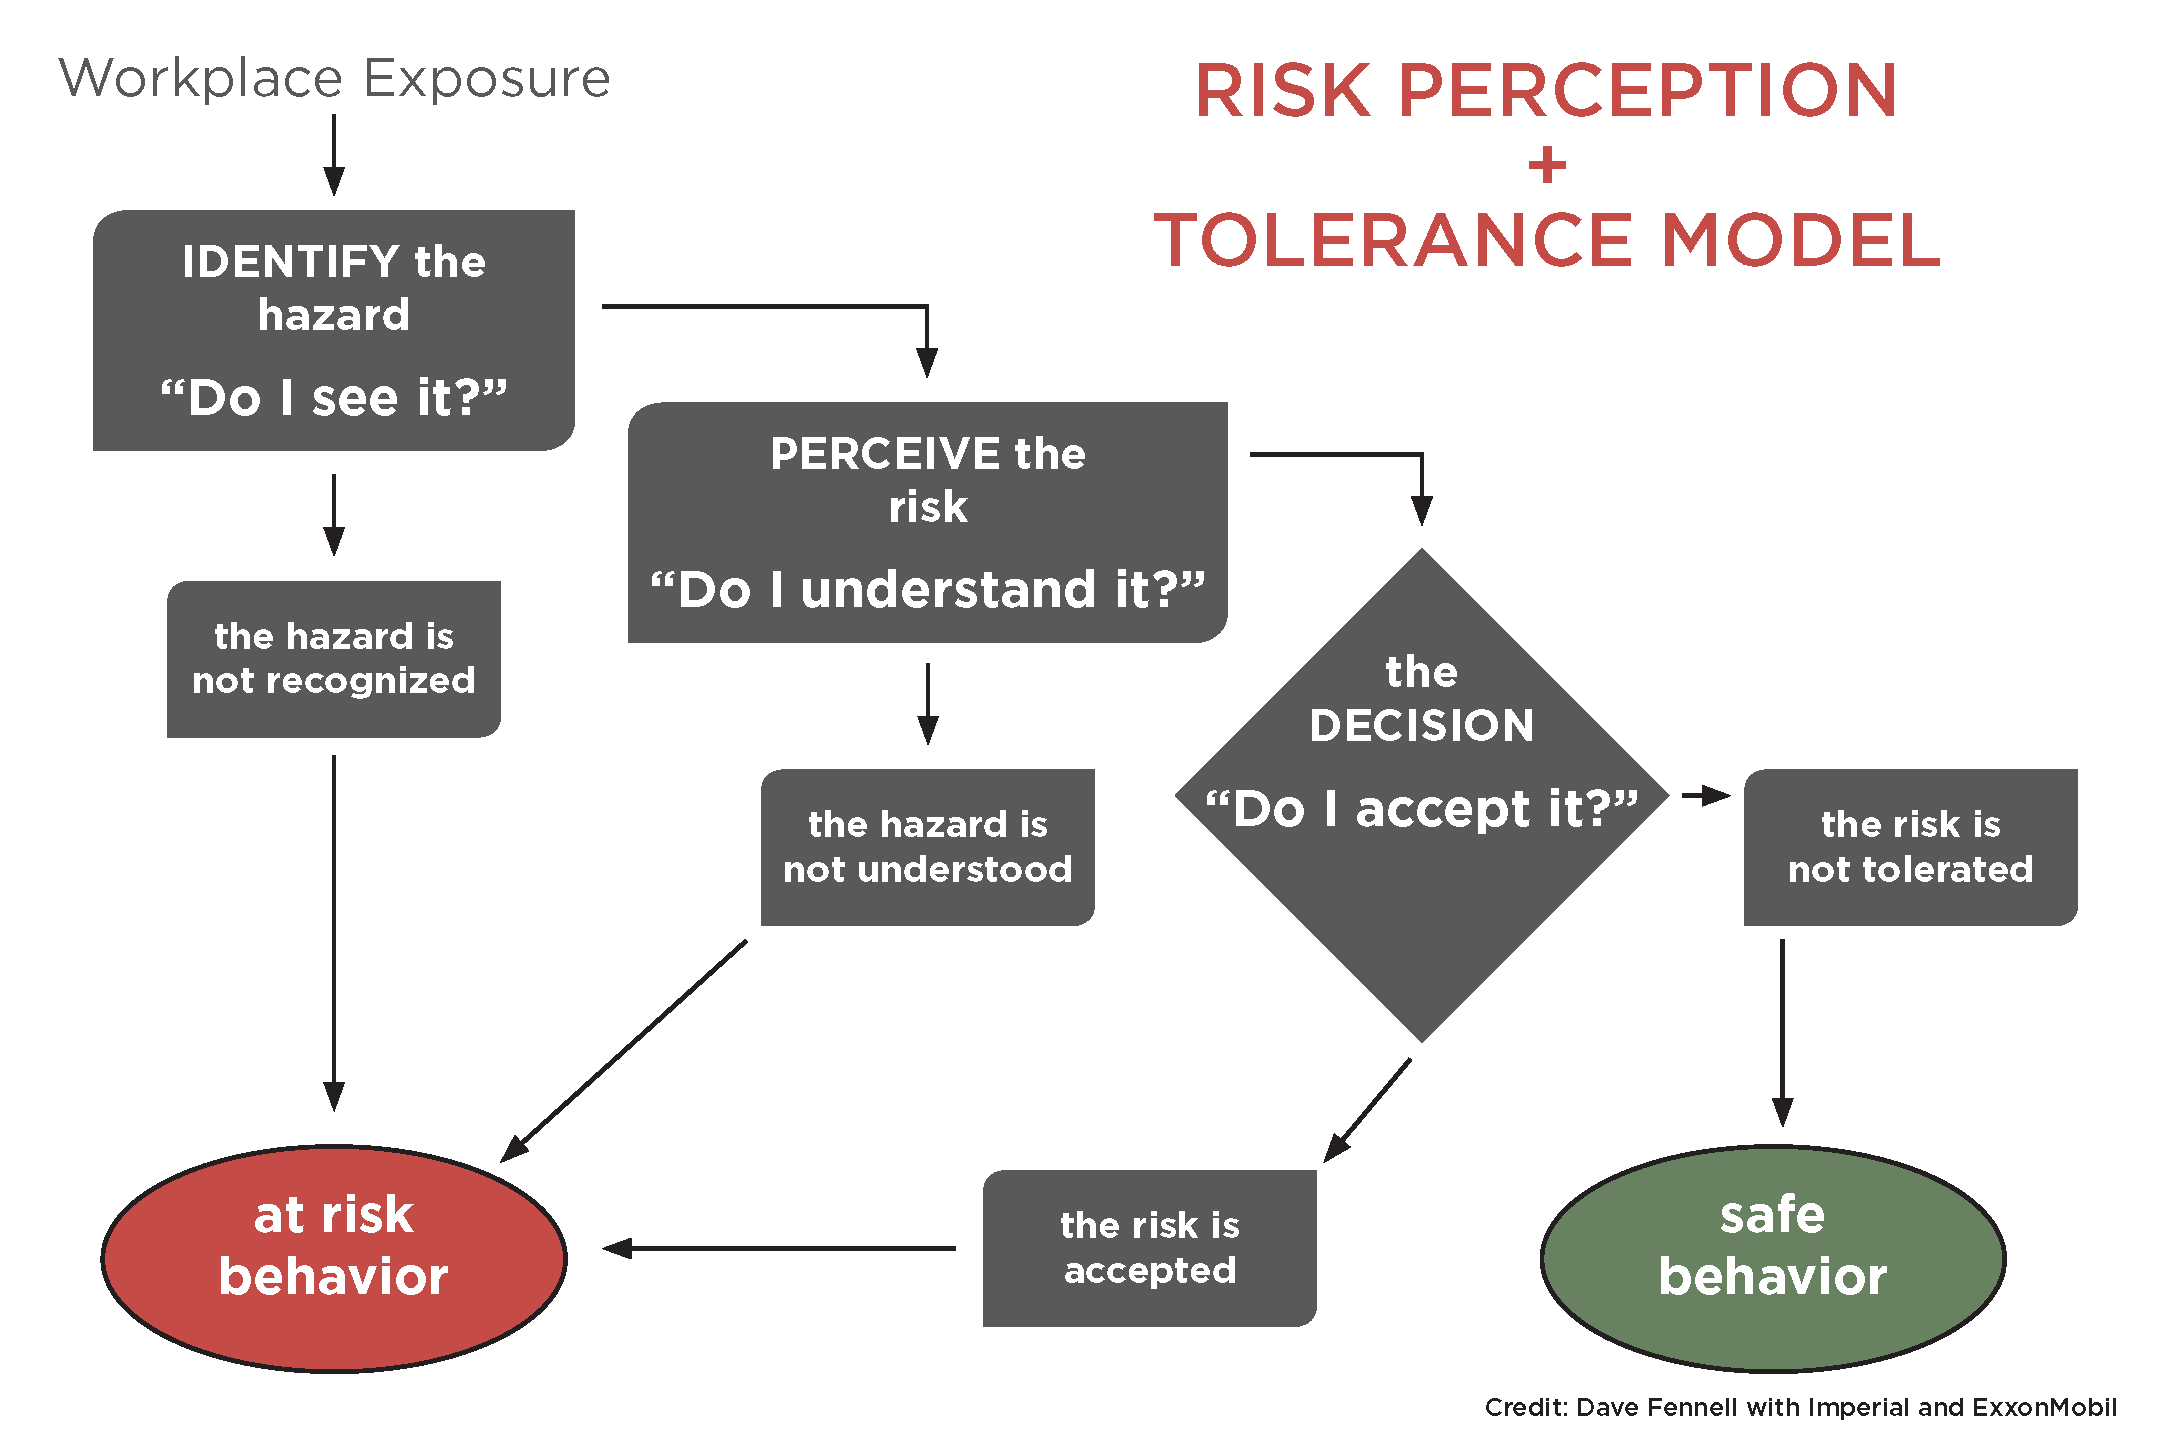 Personal Risk and What Influences Our Safety Decisions